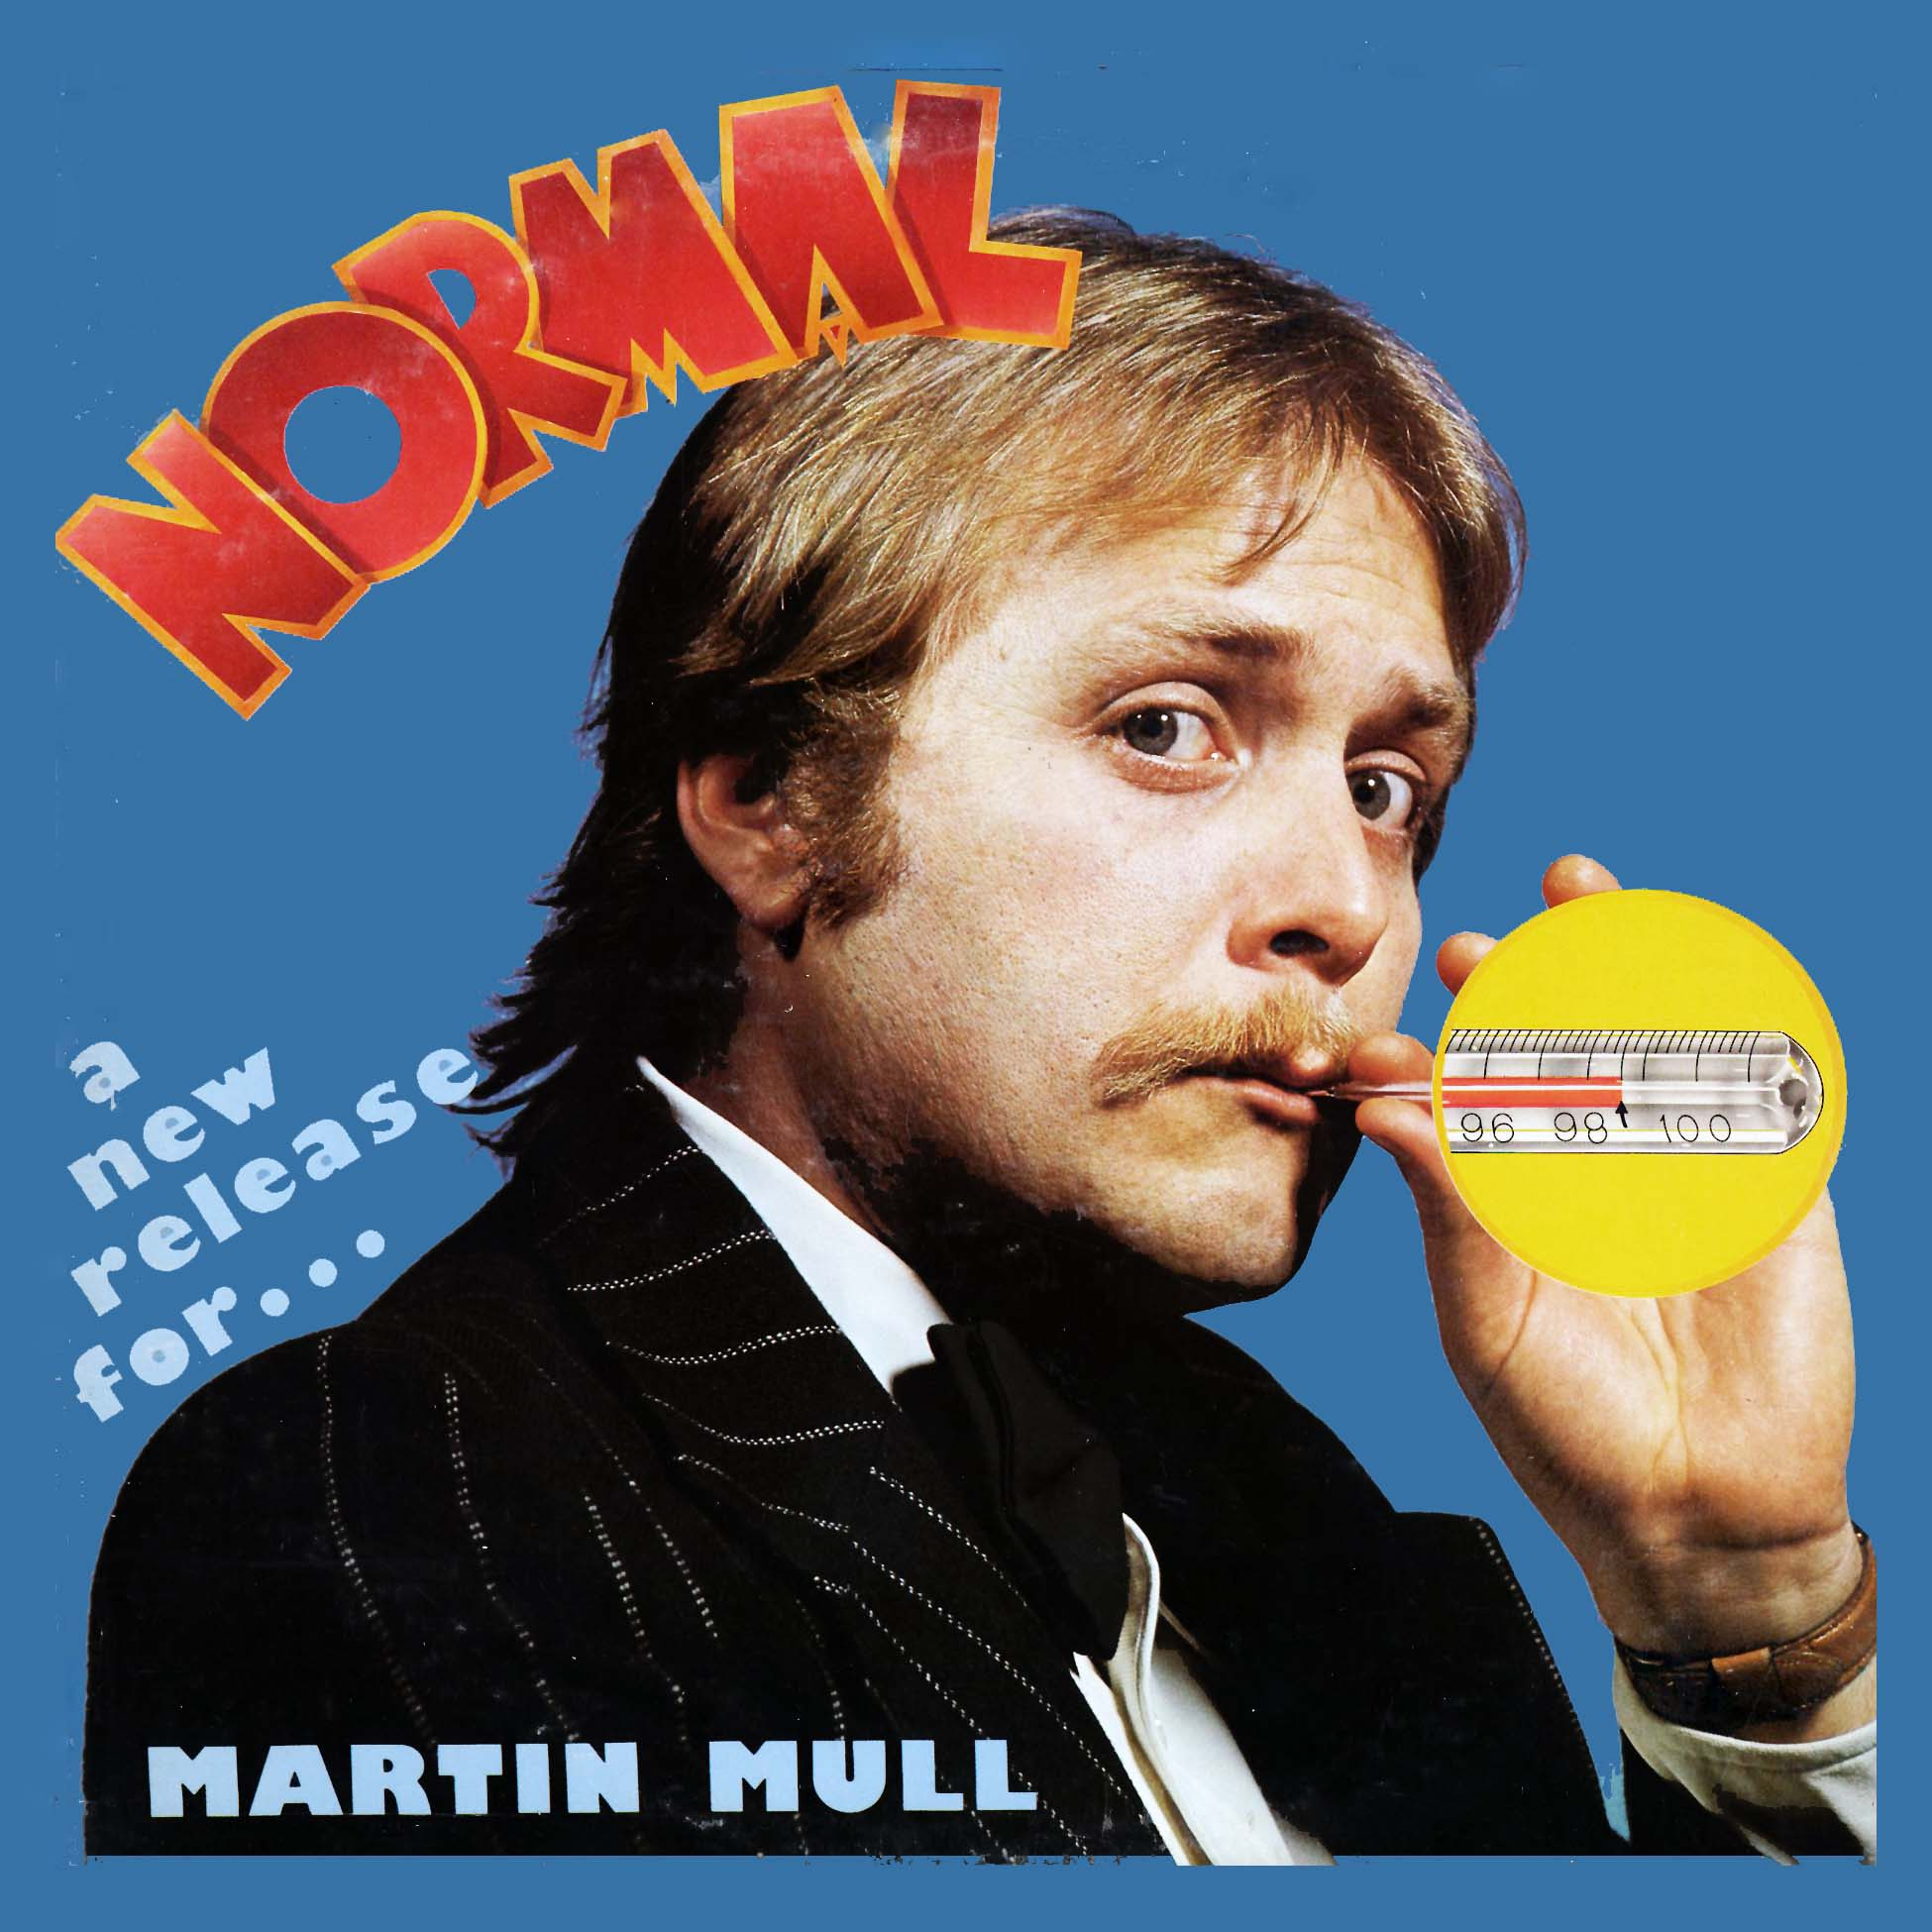 Martin Mull Normal Cp0126 Vinyl Lp Record Album